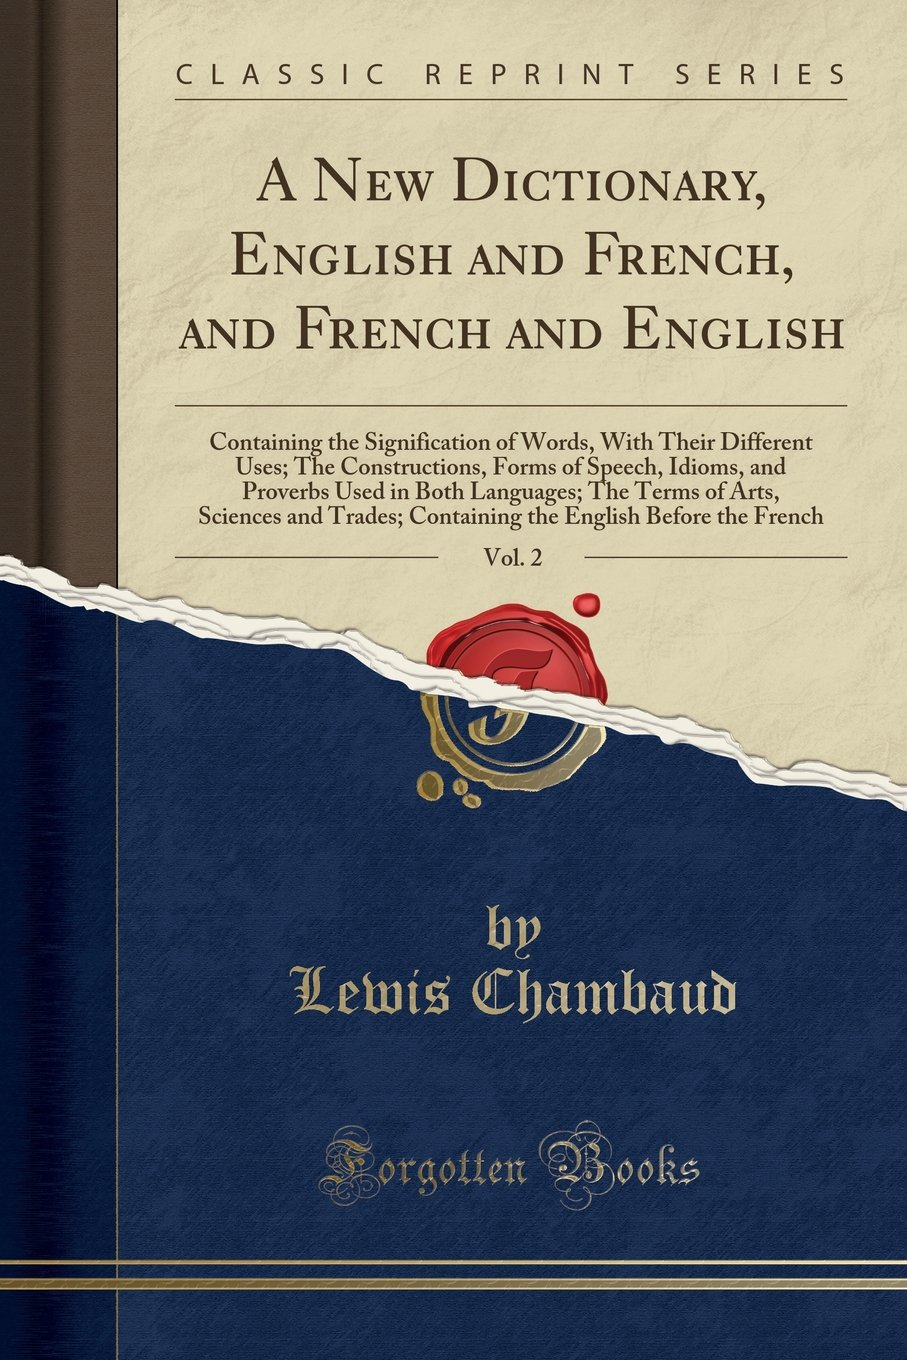 Read Online A New Dictionary, English and French, and French and English, Vol. 2: Containing the Signification of Words, With Their Different Uses; The ... The Terms of Arts, Sciences and Trades ebook